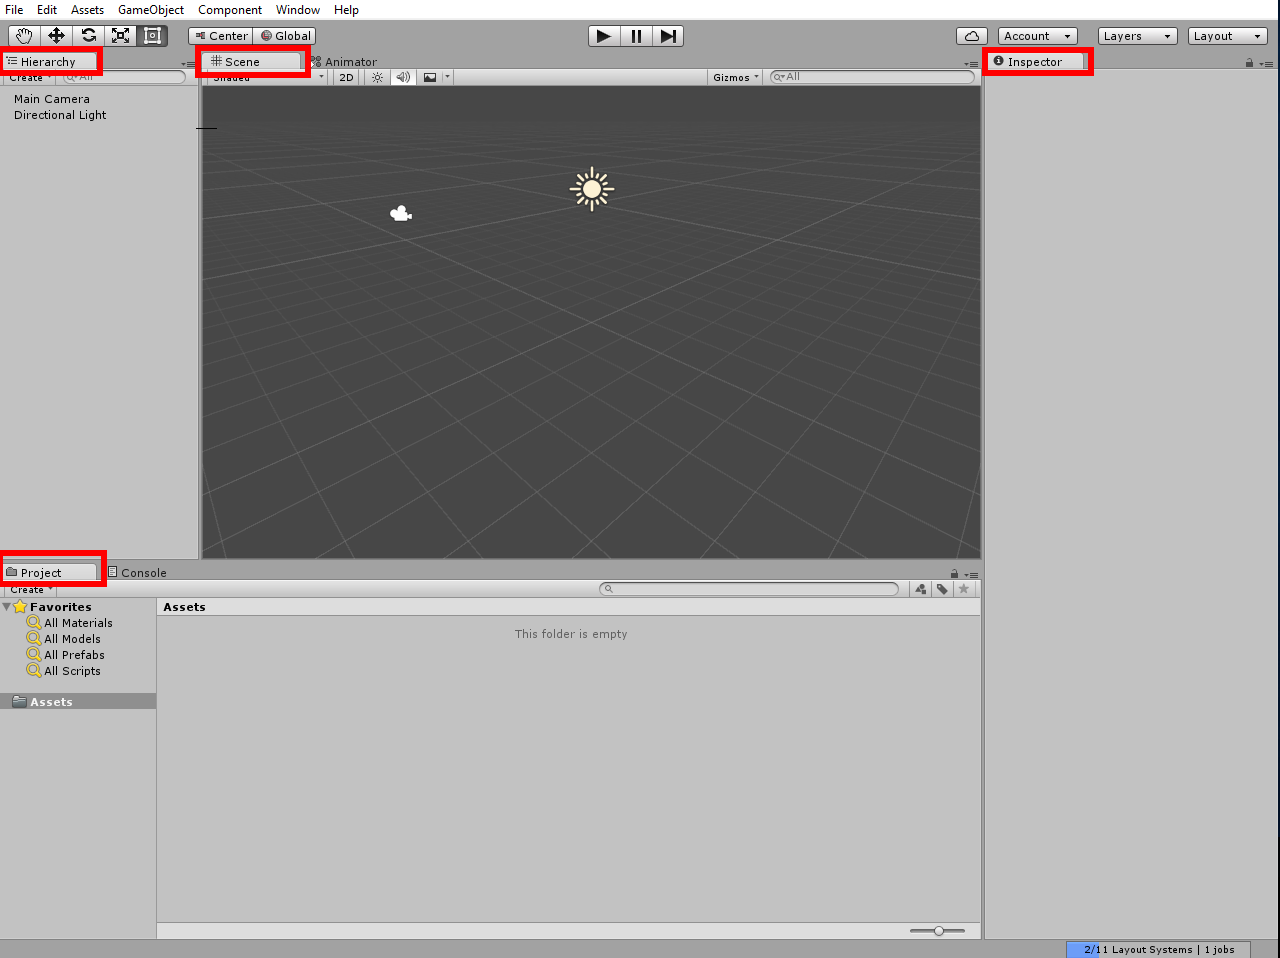 Default layout of the Unity interface.